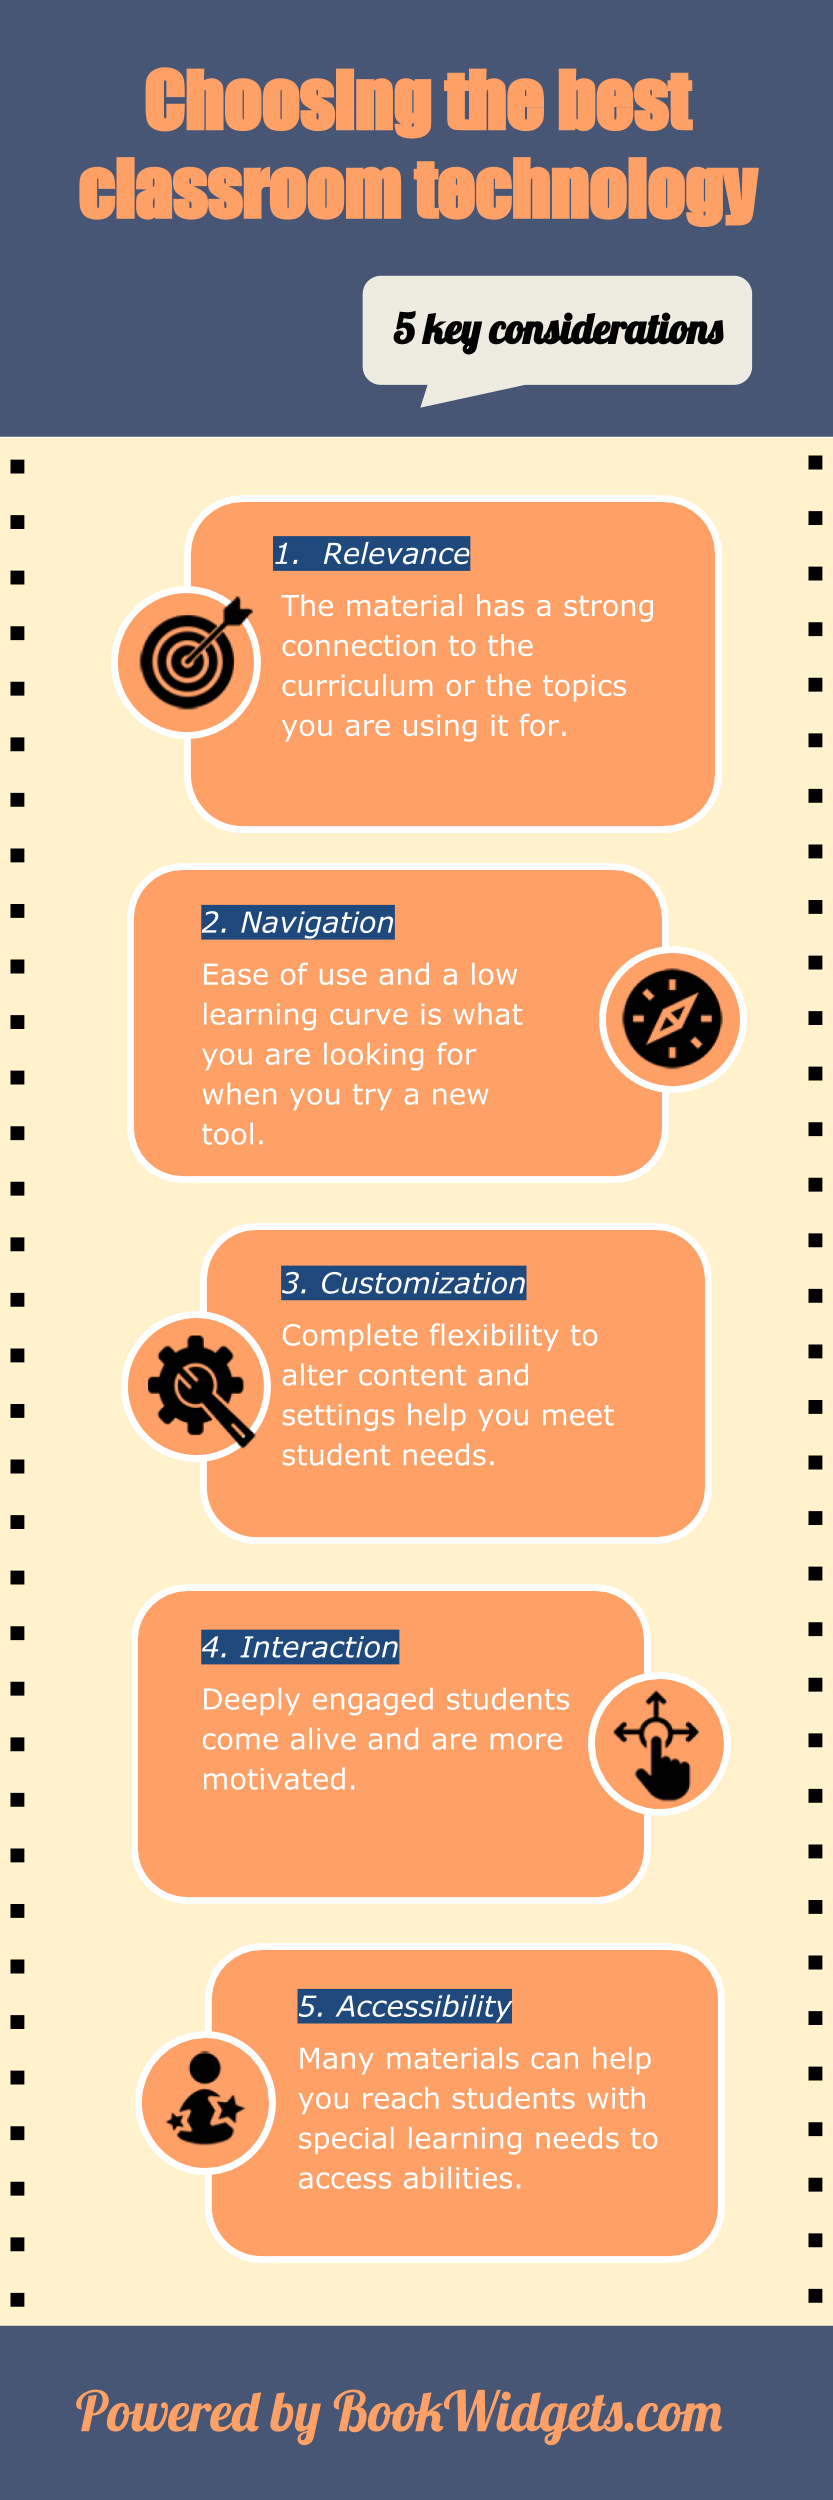 5 key considerations when choosing edtech for in your classroom